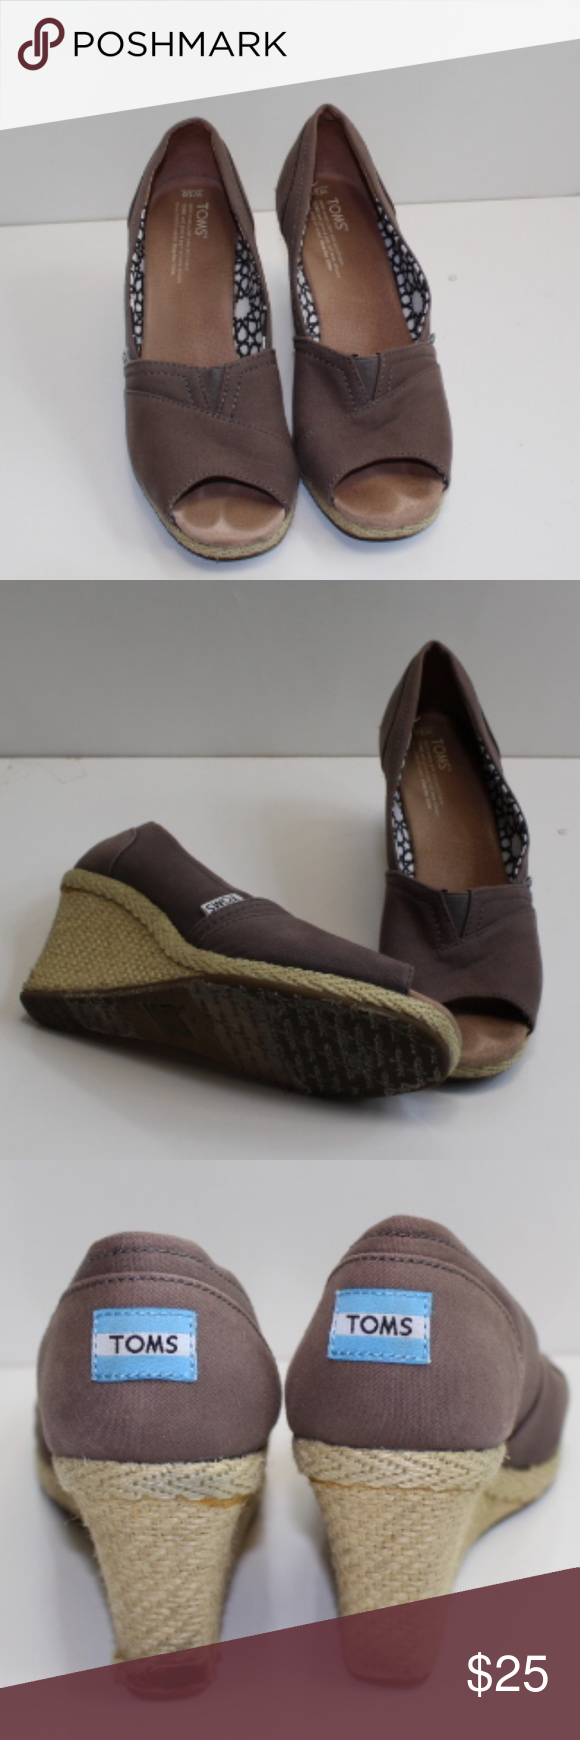 40f2daef43f 678 CALYPSO CANVAS WOMEN S WEDGES Toms SHOES